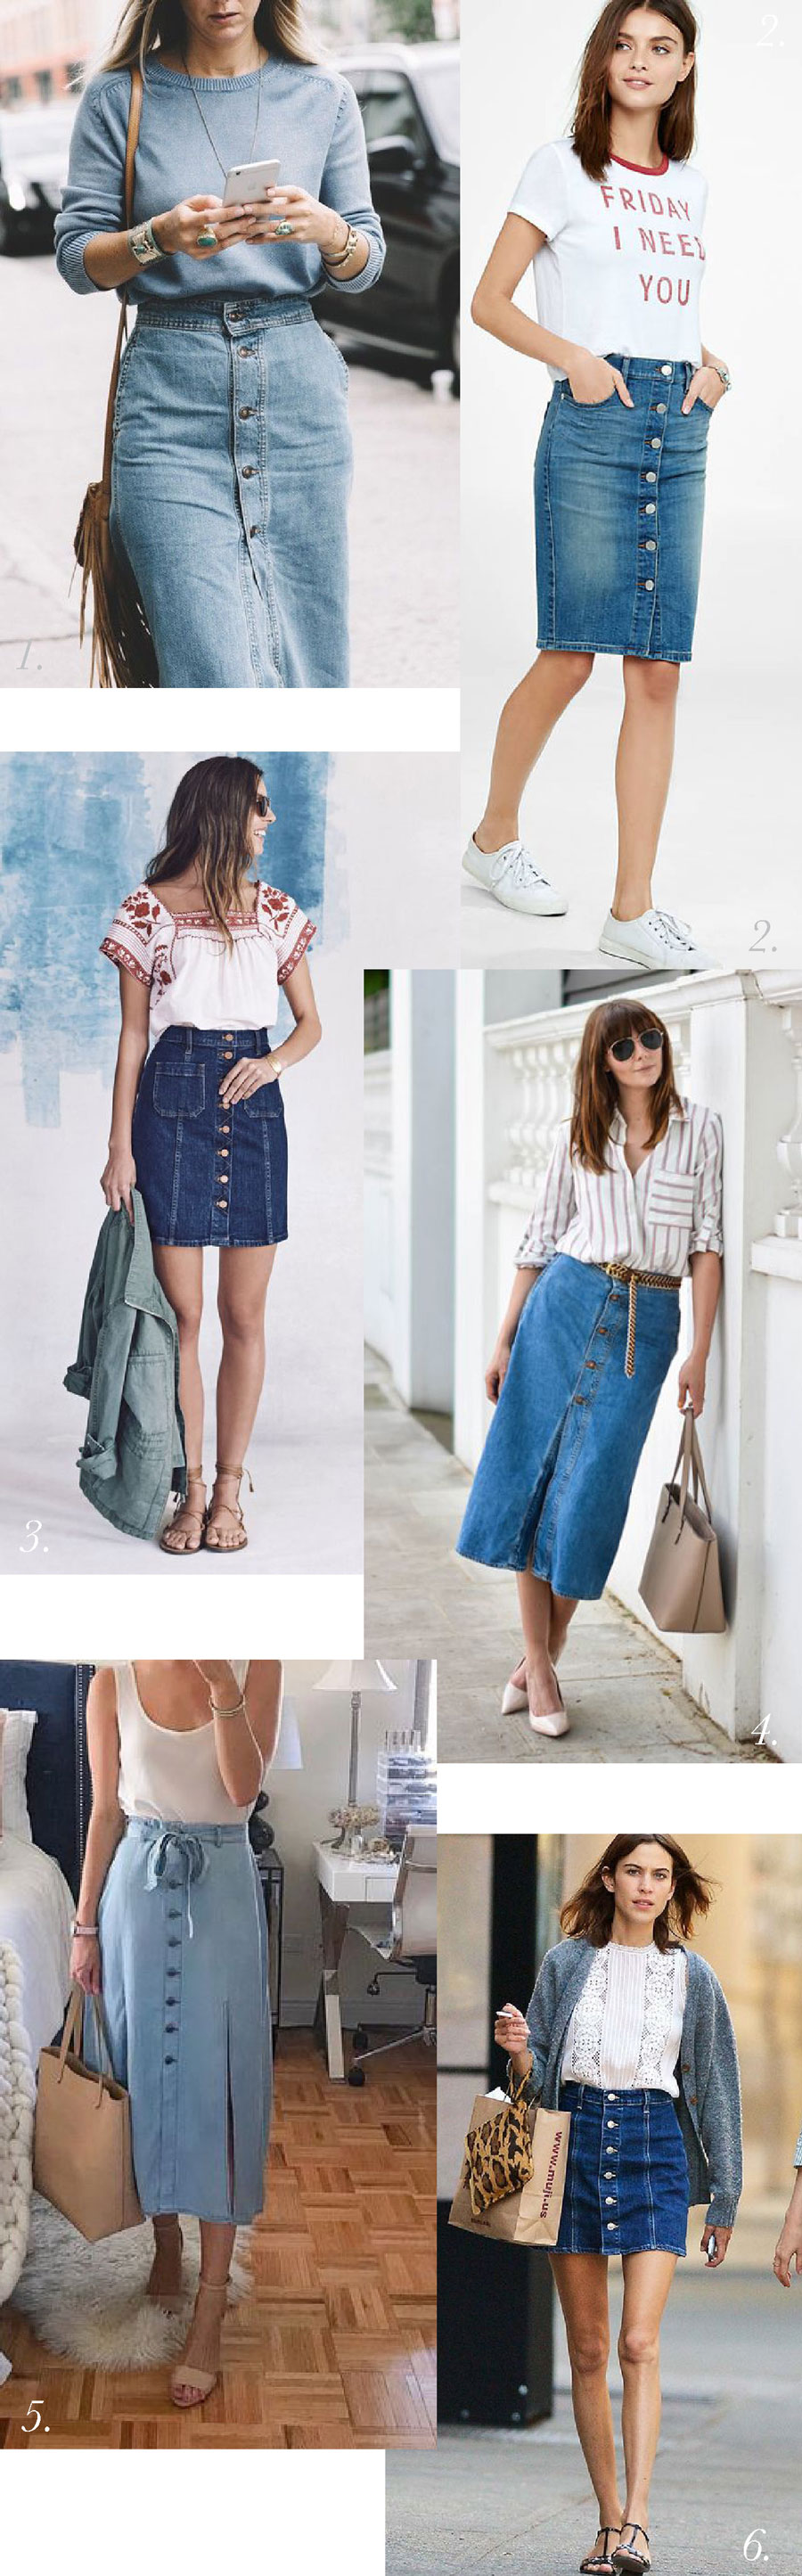 Denim skirt outfit styling // Fiona Sundress pattern by Closet Case Patterns